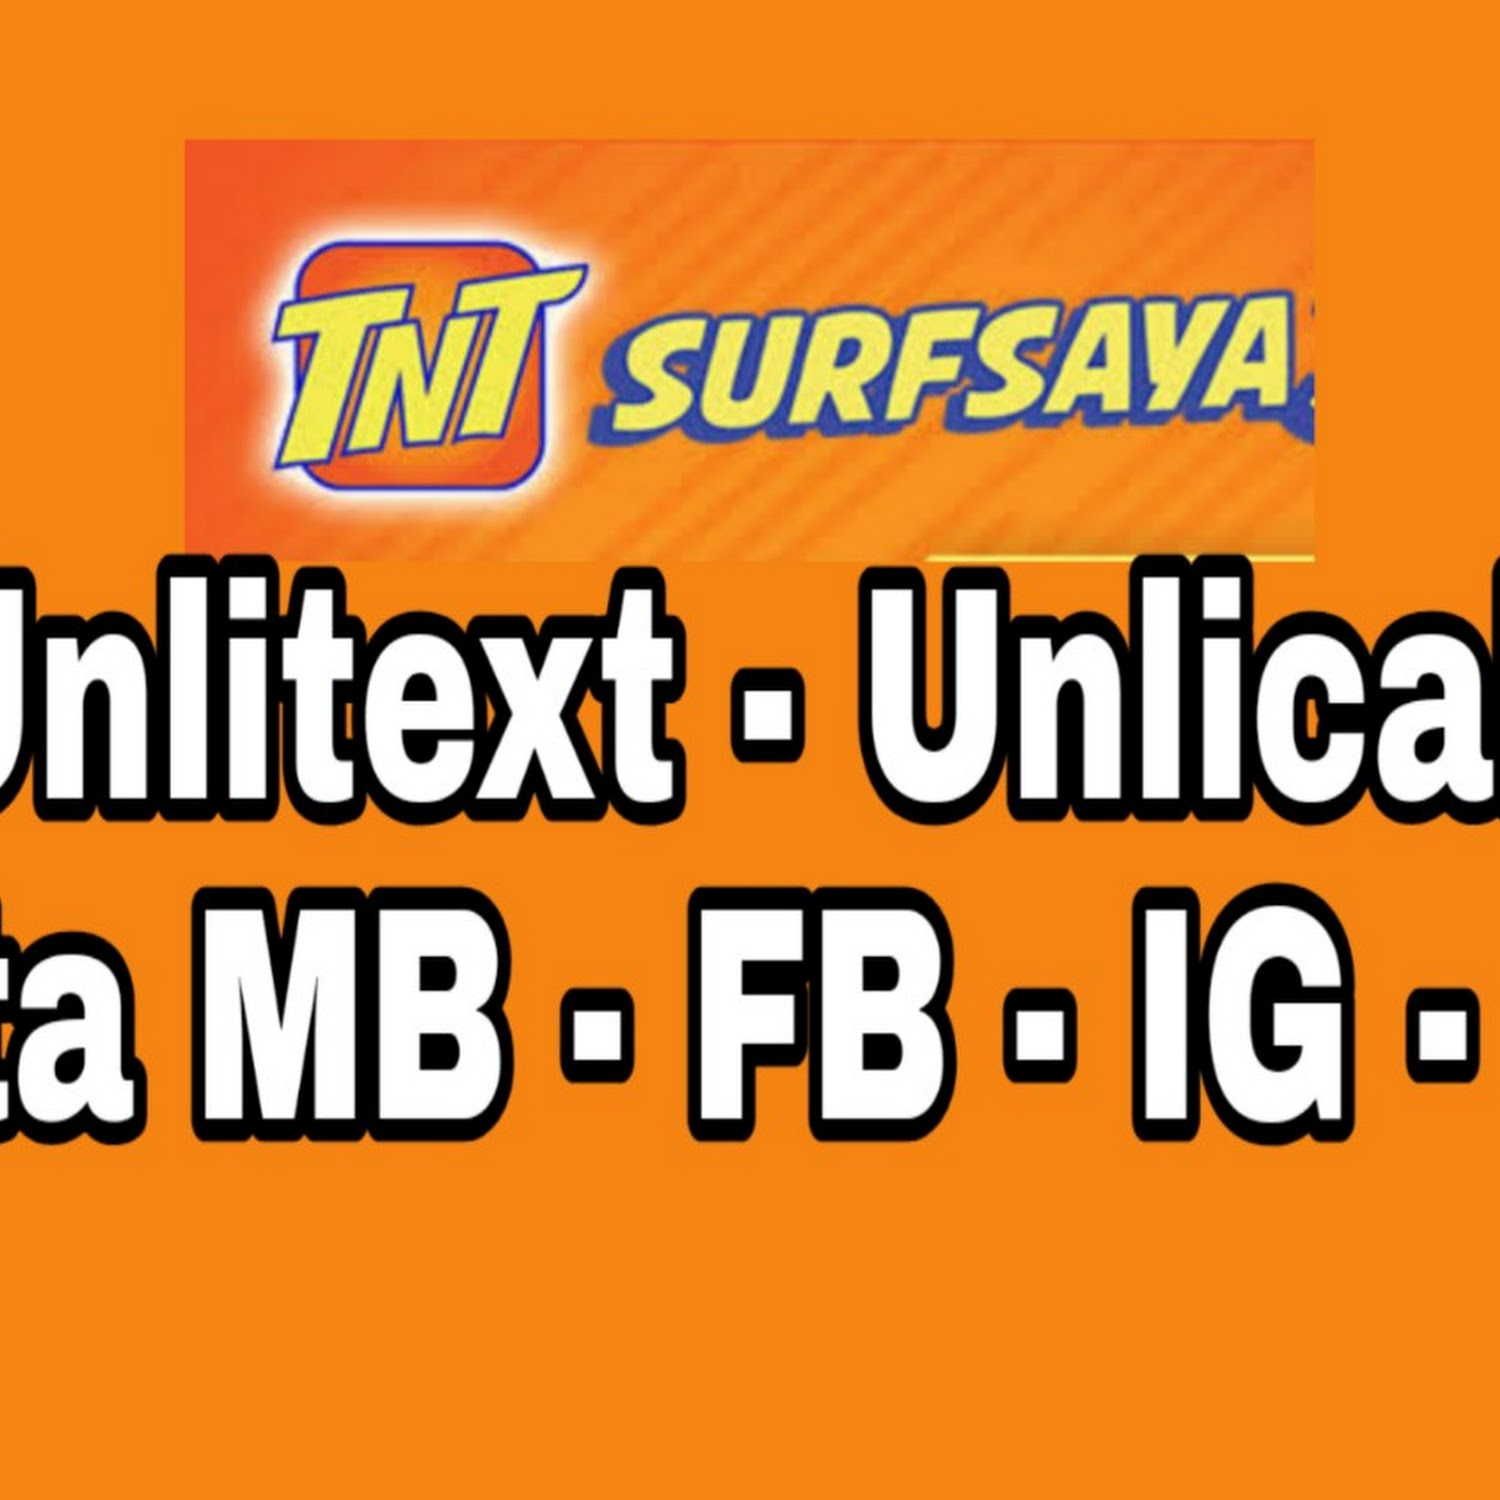 TNT SURFSAYA Promos: Unlicall + Unlitext + Mobile Data + FB + IG + ML